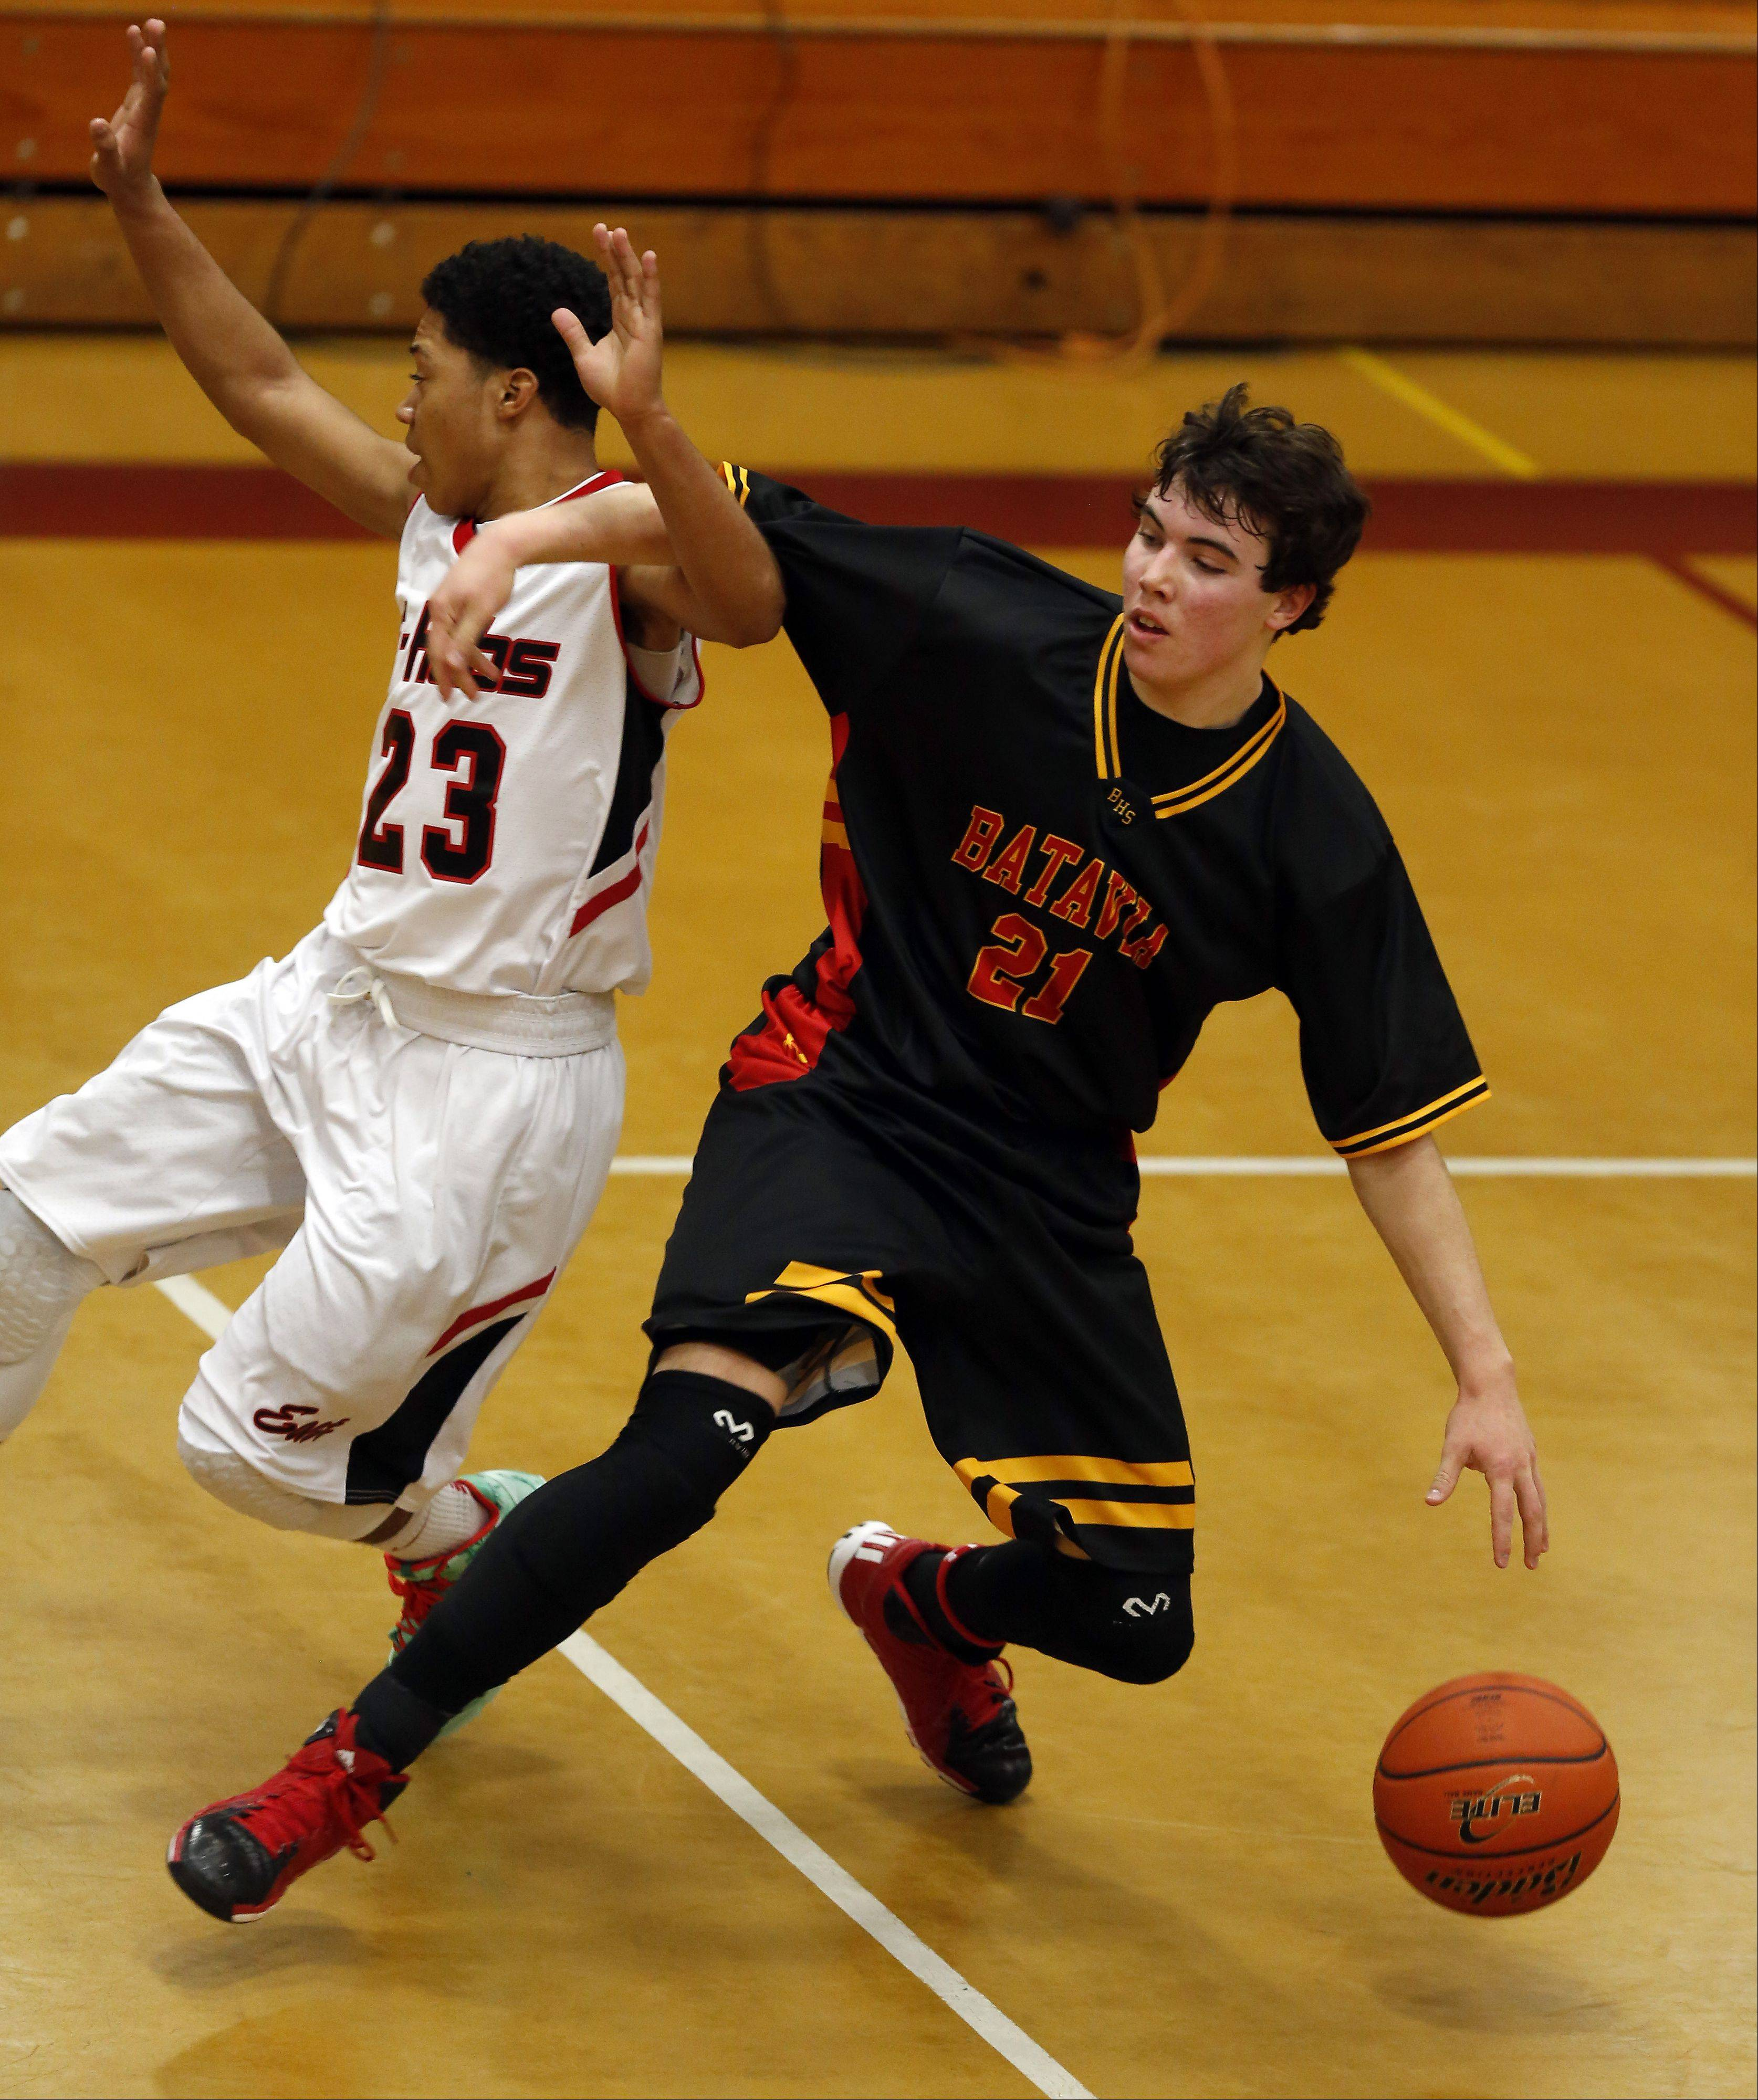 Batavia's Jeremy Schoessling gets tangled up with Rockford East's Daevion Dixon at the 39th Annual Elgin Boys Holiday Basketball Tournament at Elgin High School Saturday December 28, 2013.